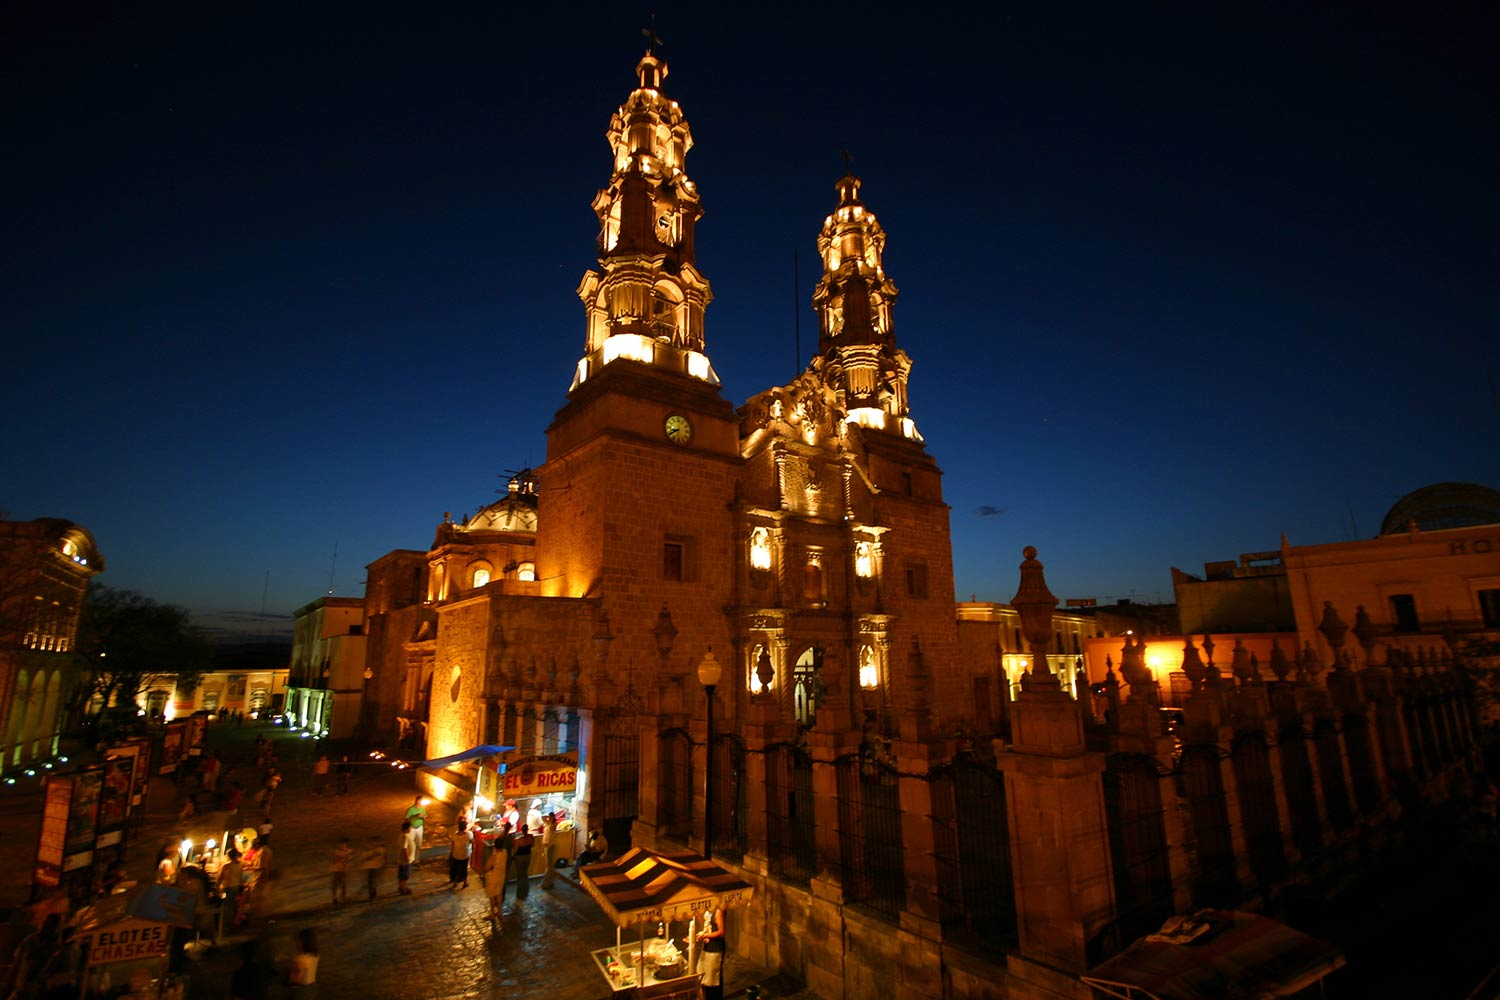 Nighttime view of a cathedral in Aguascalientes